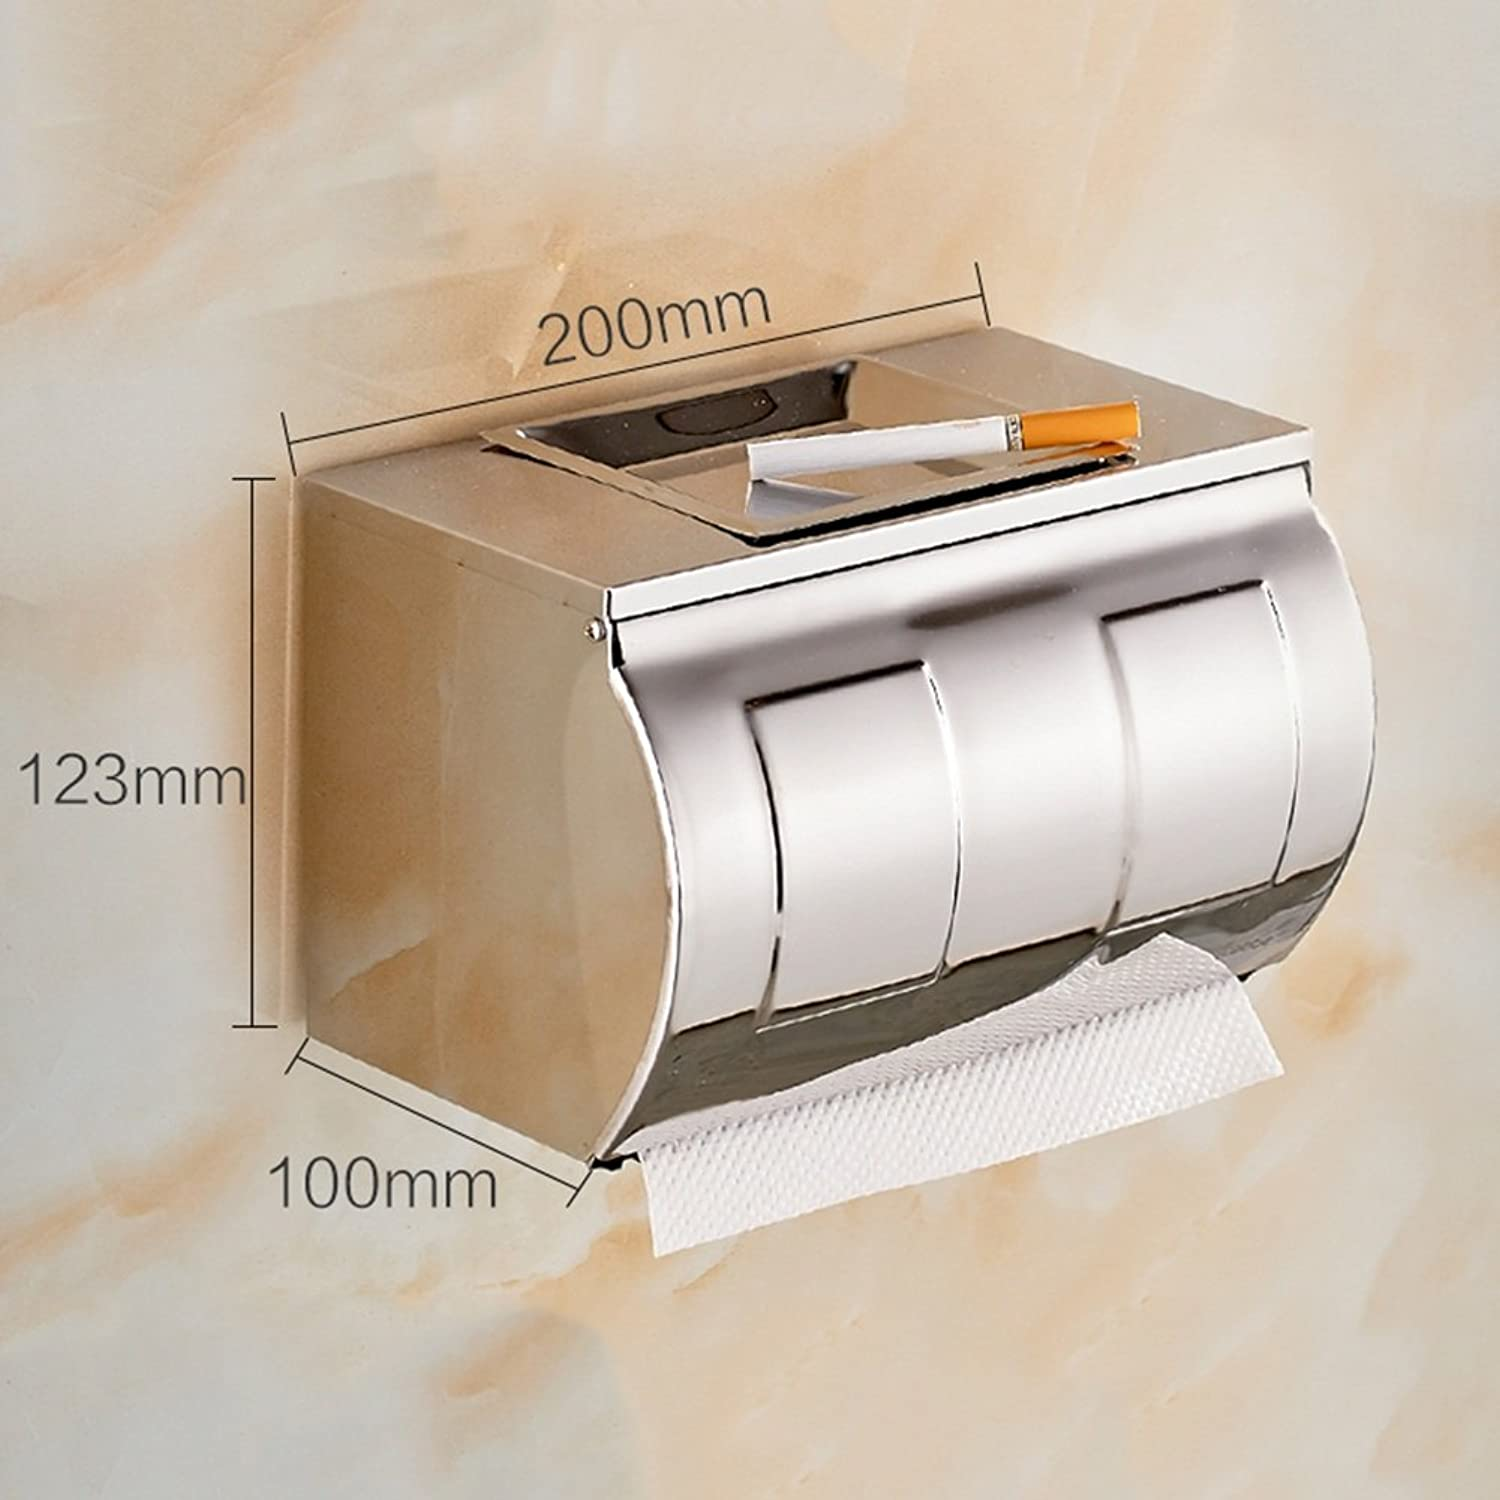 WENZHE Over Toilet Bathroom Toilet Roll Holder Storer Wall Mounted Tissue Box Waterproof Clamshell Stainless Steel, 4 Sizes Storage Racks Unit (color   D-200  100  123mm)